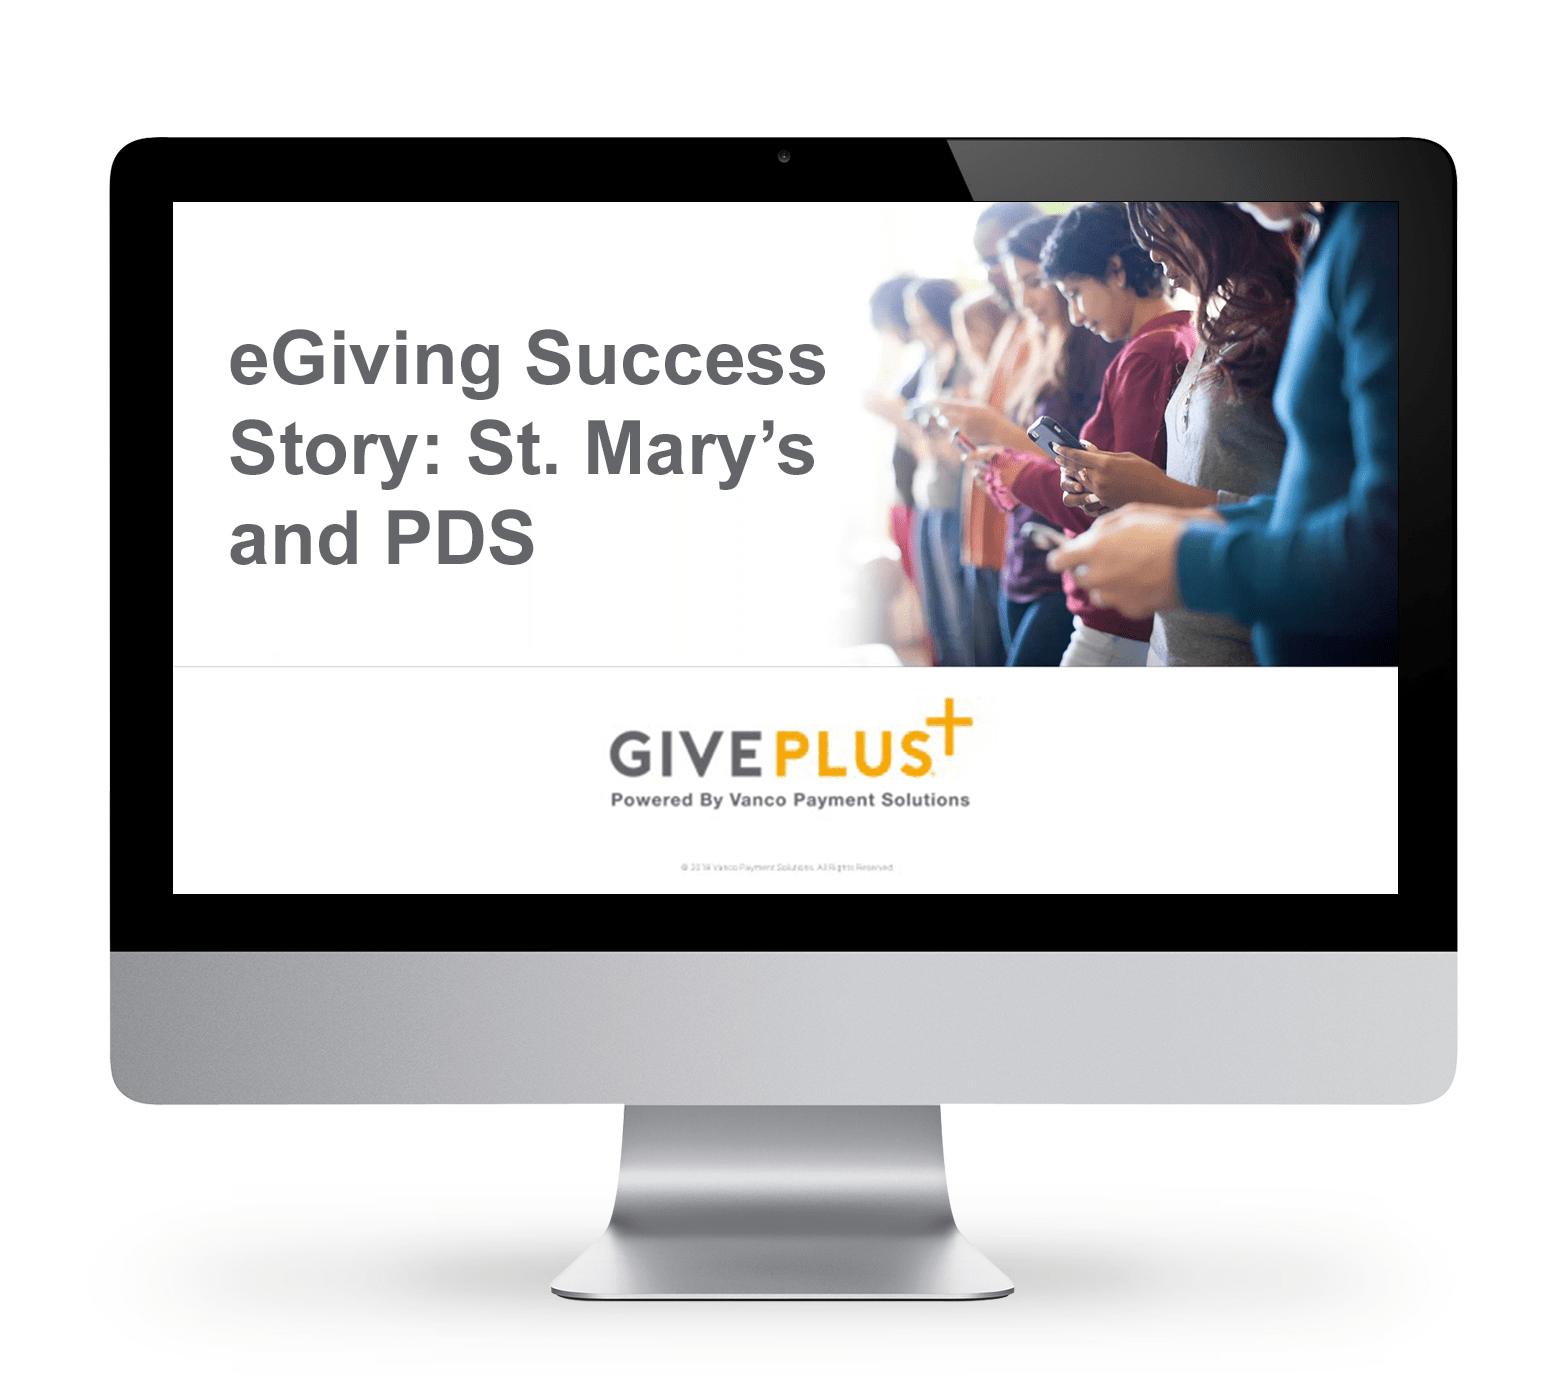 eGiving Success Story: St. Mary's and PDS